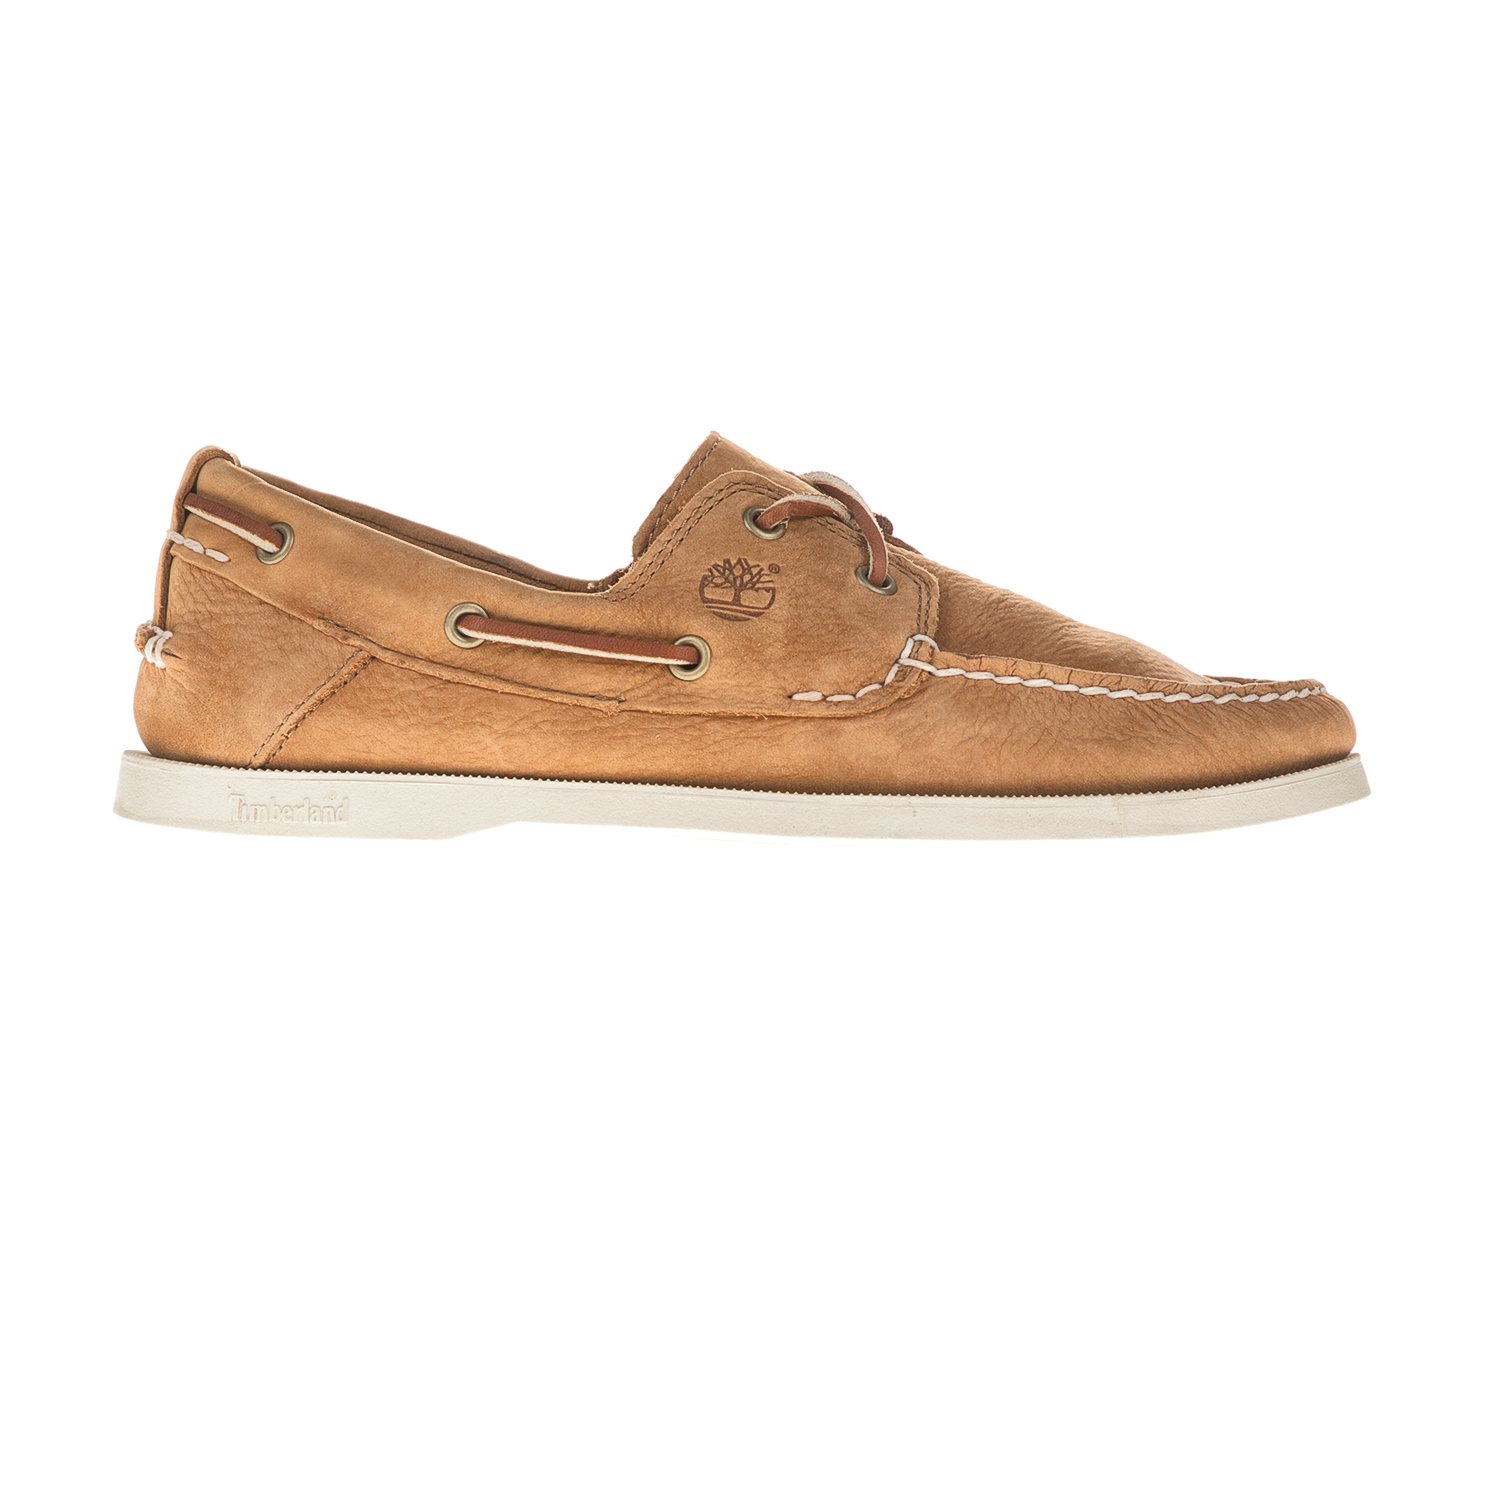 TIMBERLAND - Ανδρικά boat shoes TIMBERLAND CLASSIC 2 EYE καφέ ανδρικά παπούτσια boat shoes